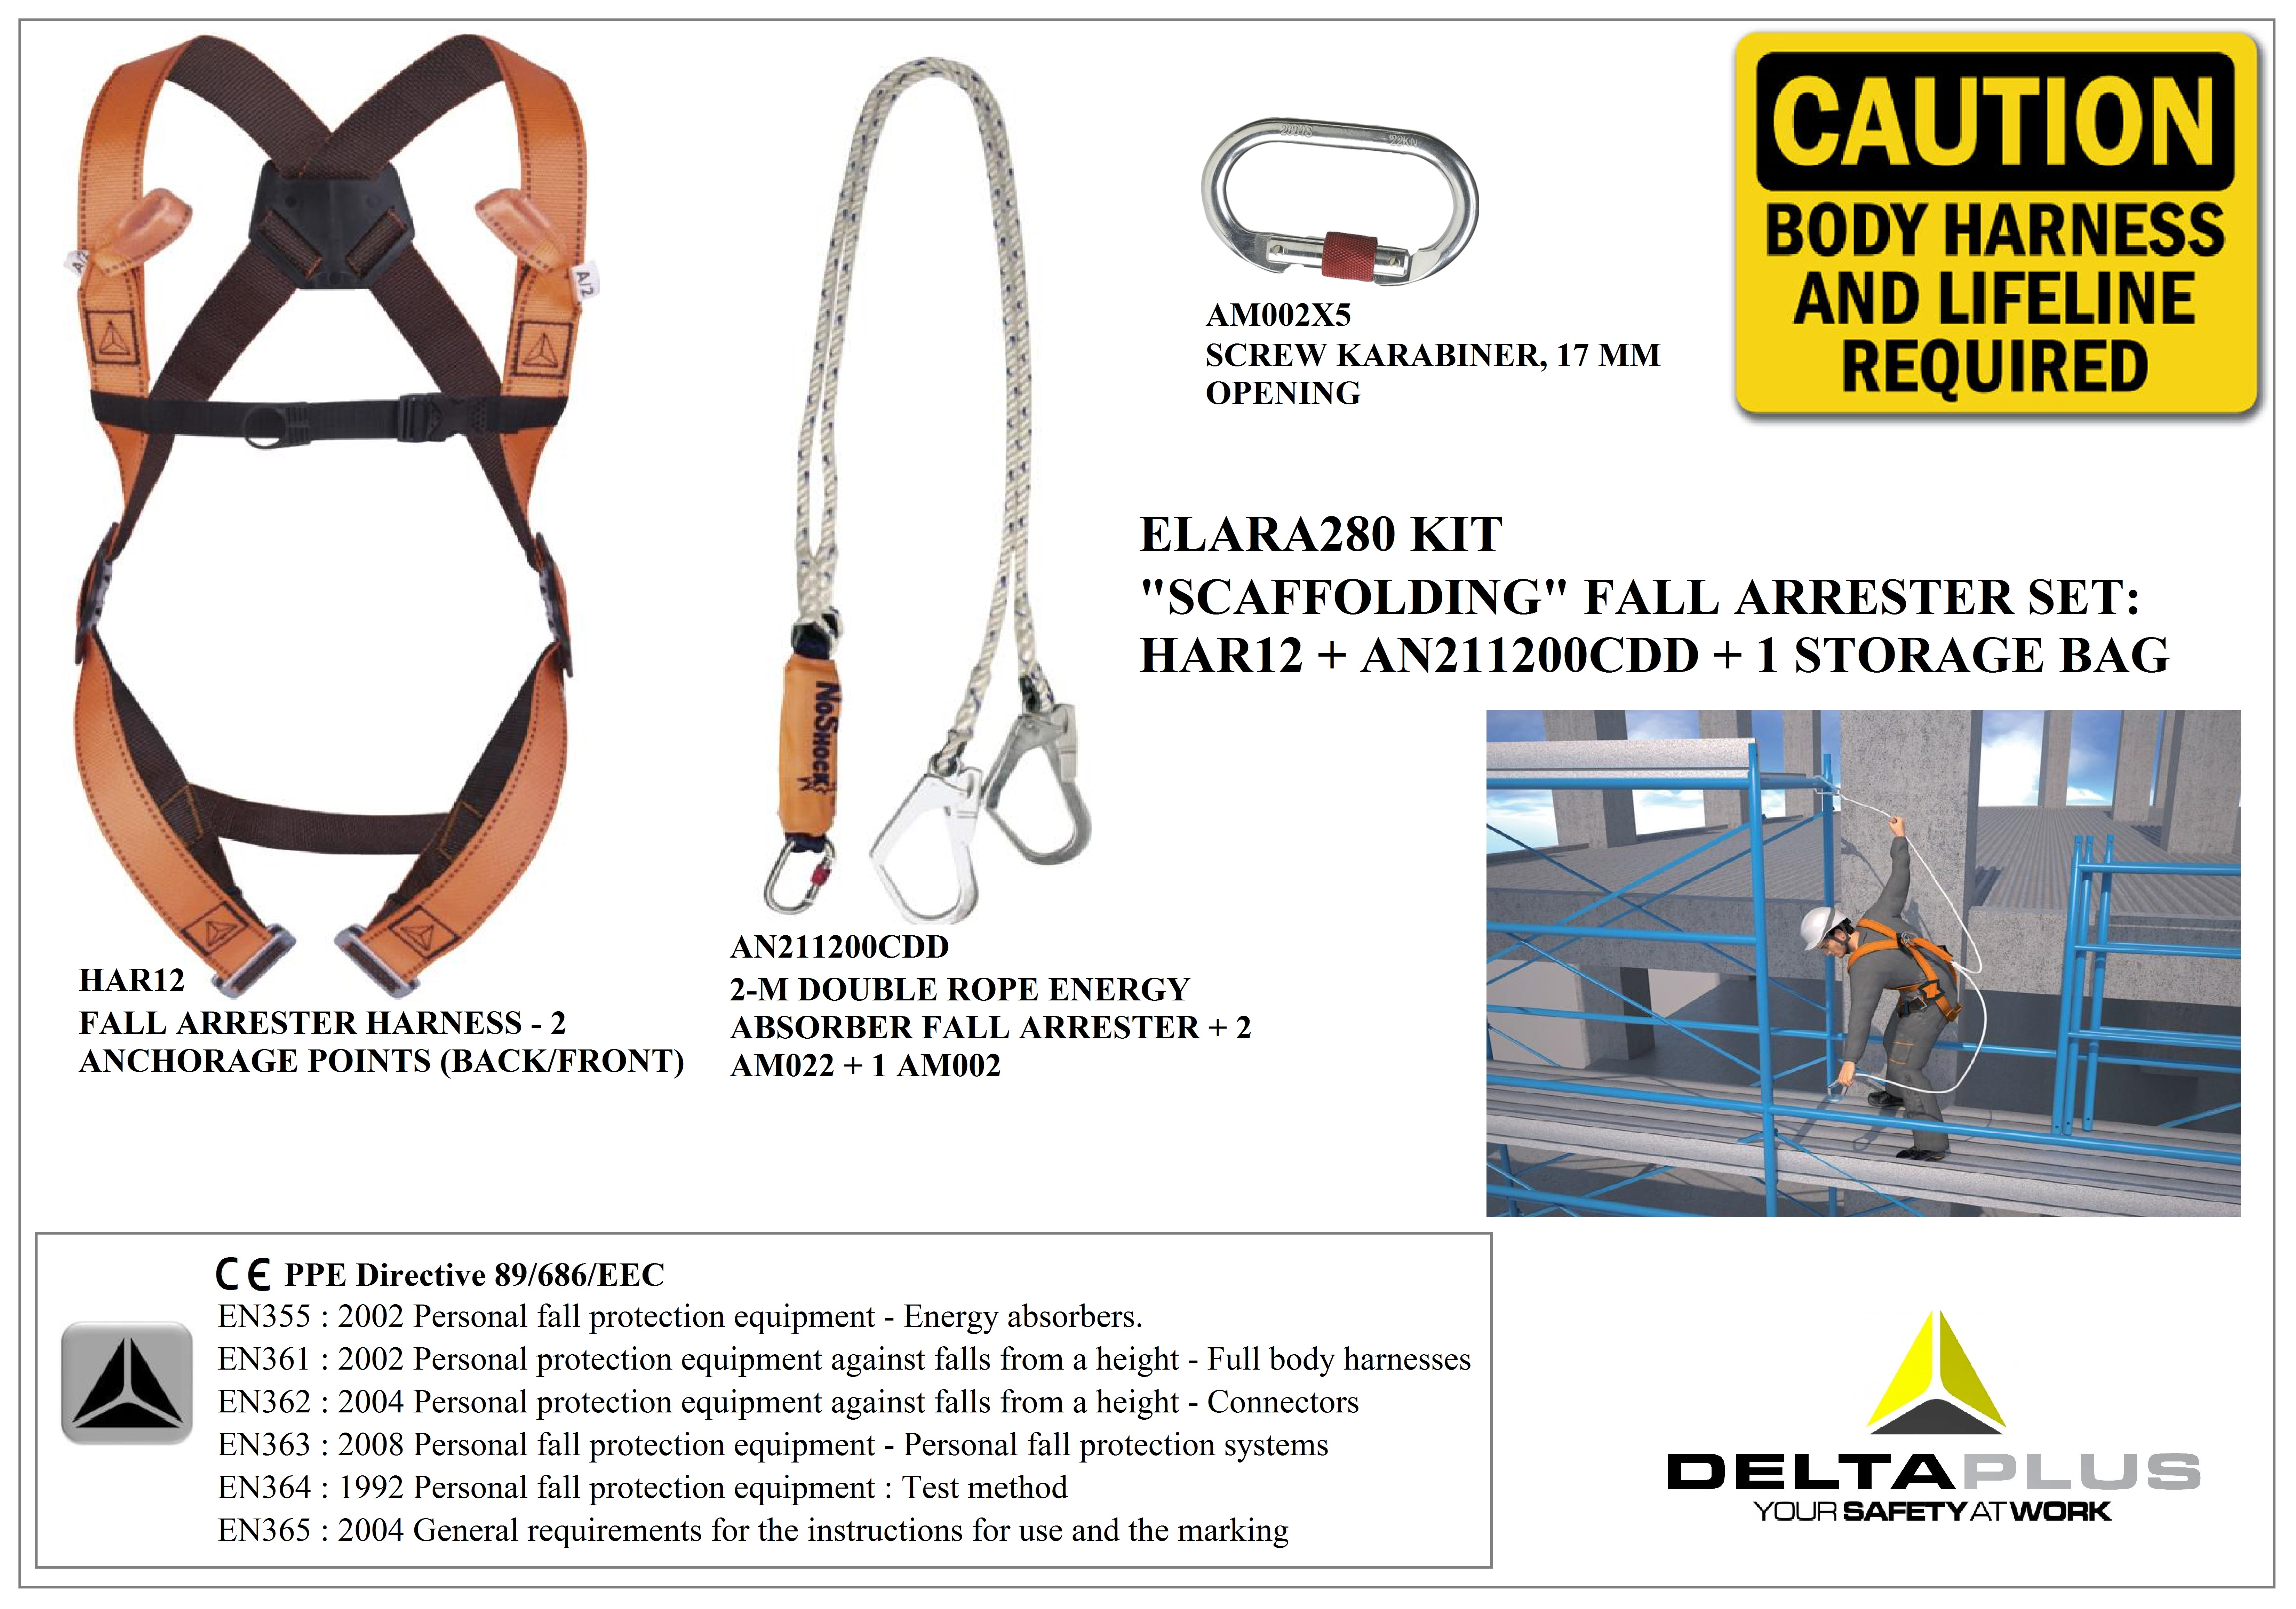 Fall Protection Harness Instructions Wire Center Volt Air Compressor Wiring Http Pic2flycom 240voltaircompressor Rapidsafe Philippines Inc Rh Rapidsafephilippines Com Carabiner Arrest